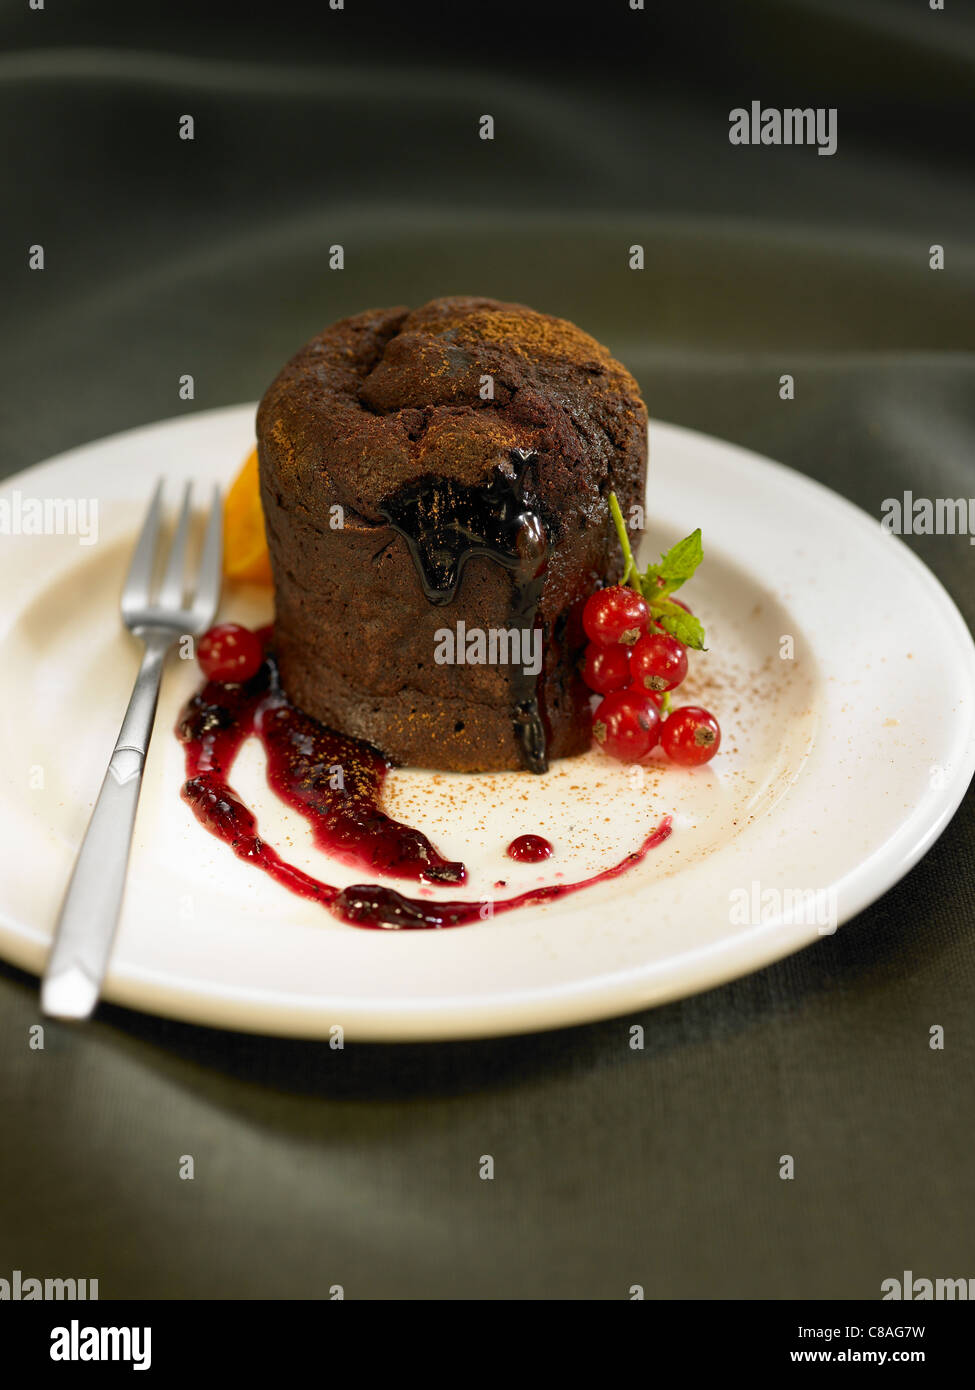 Individual runny chocolate cake - Stock Image